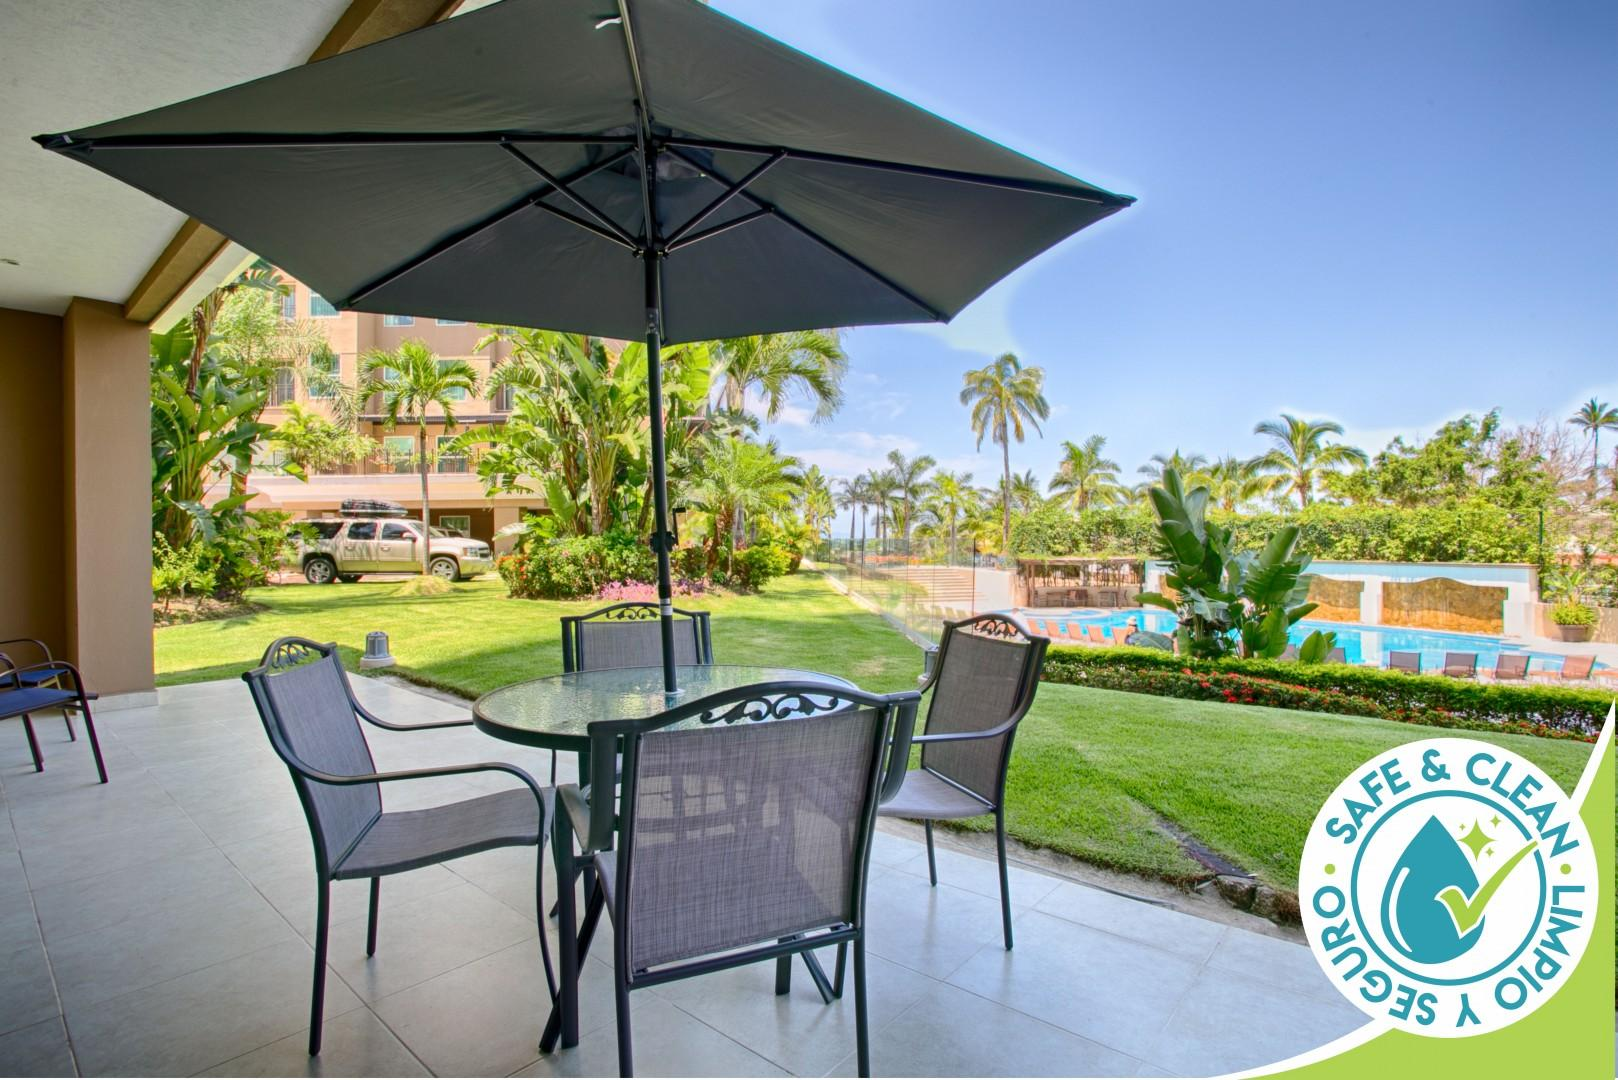 Accessible Condo Great For Families, Steps from Pools, Beach, Hot Tub